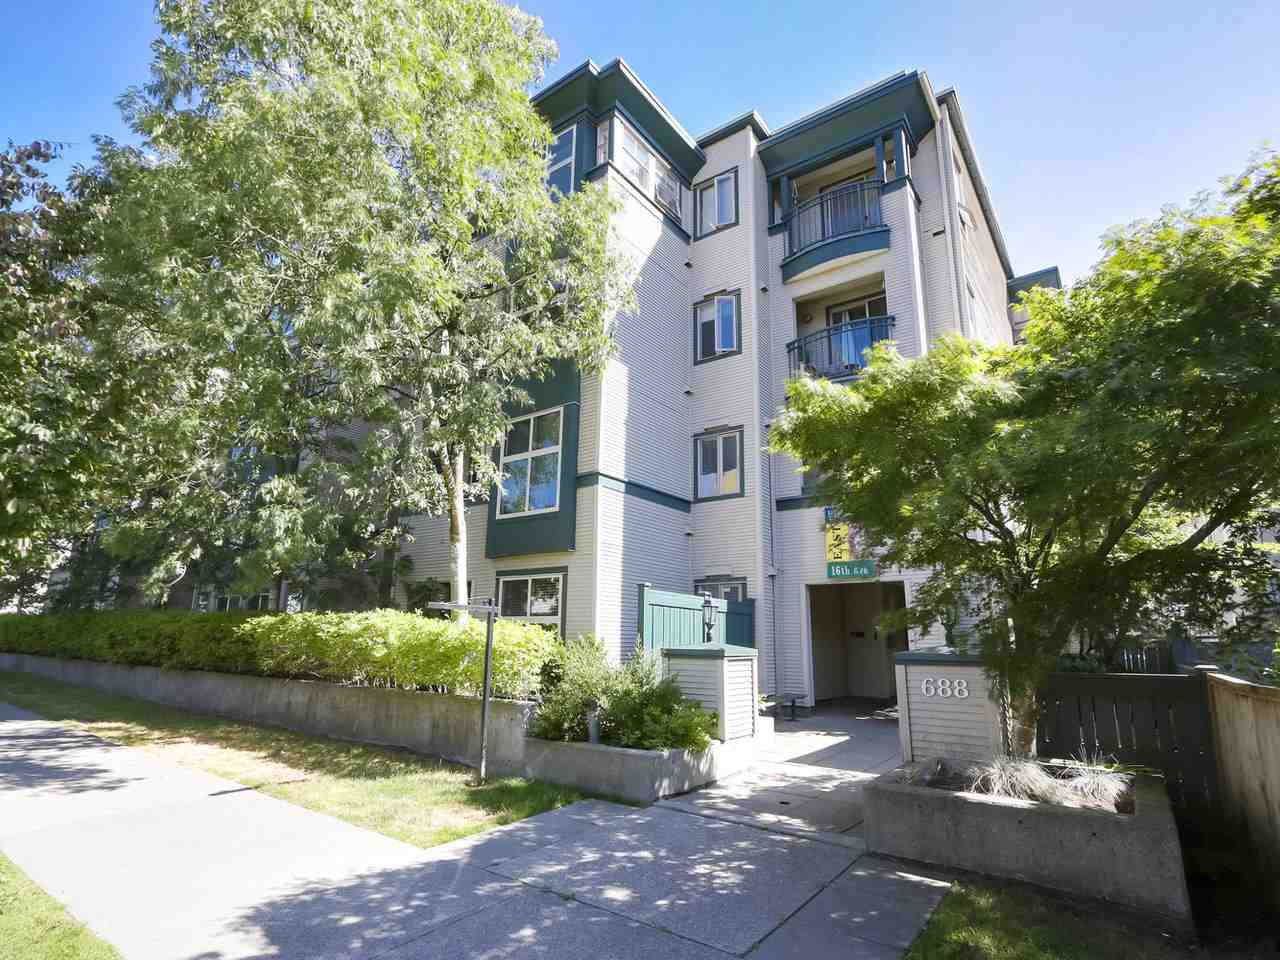 312 688 E 16TH AVENUE - Fraser VE Apartment/Condo for sale, 1 Bedroom (R2510286)